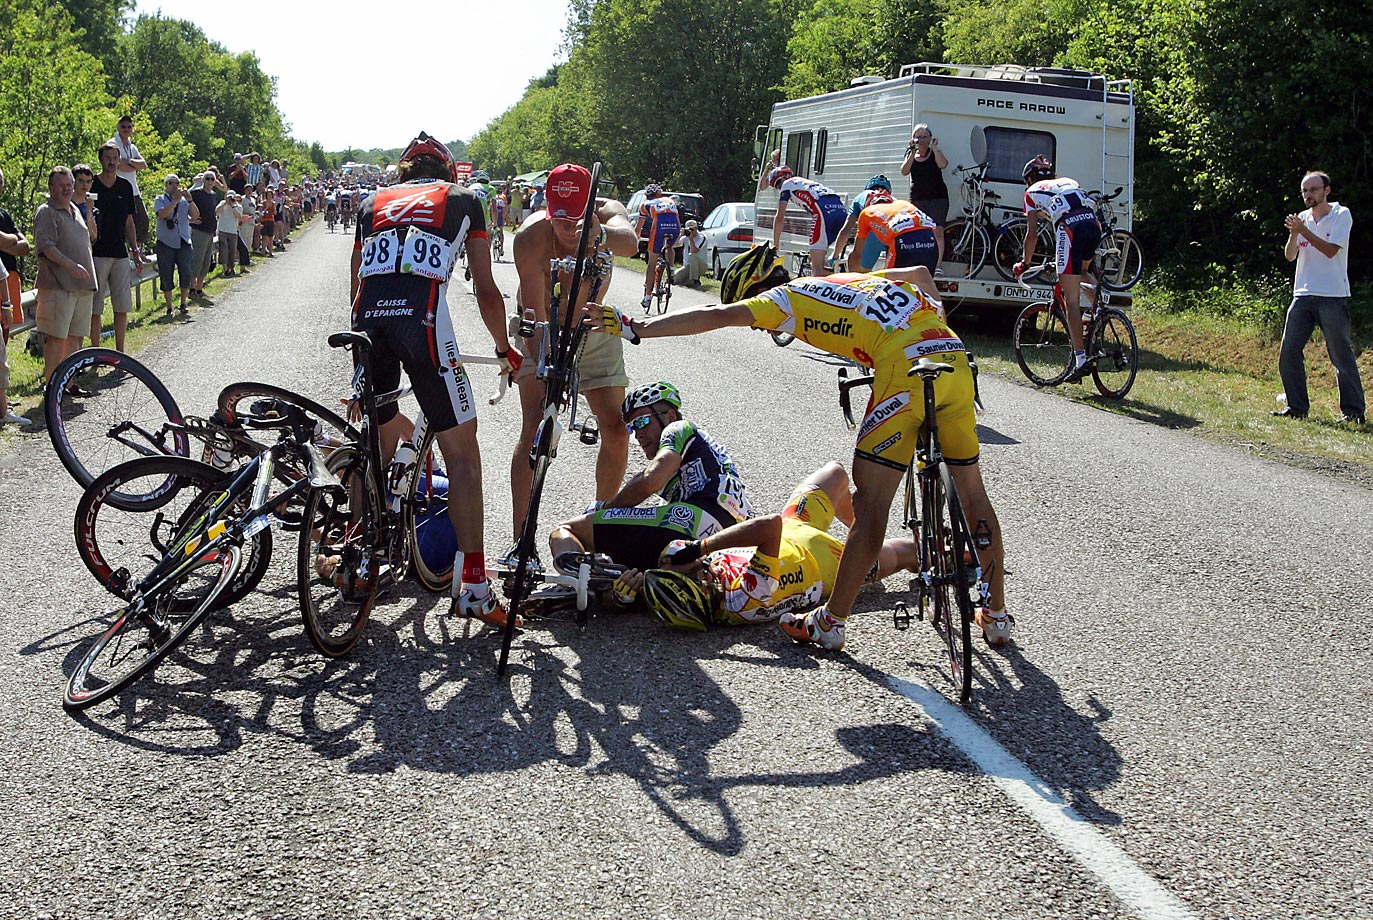 Hot days and long stages, such as this 228.5 km slog early in the 2006 Tour, lead to crashes. In addition to losing skin and blood – abrasions that adversely effect their sleep, their ability to recover – these crash victims all lost time. The need to get back on one's bike, still bleeding, then go deep in the red simply to catch the main group, adds insult to injury.